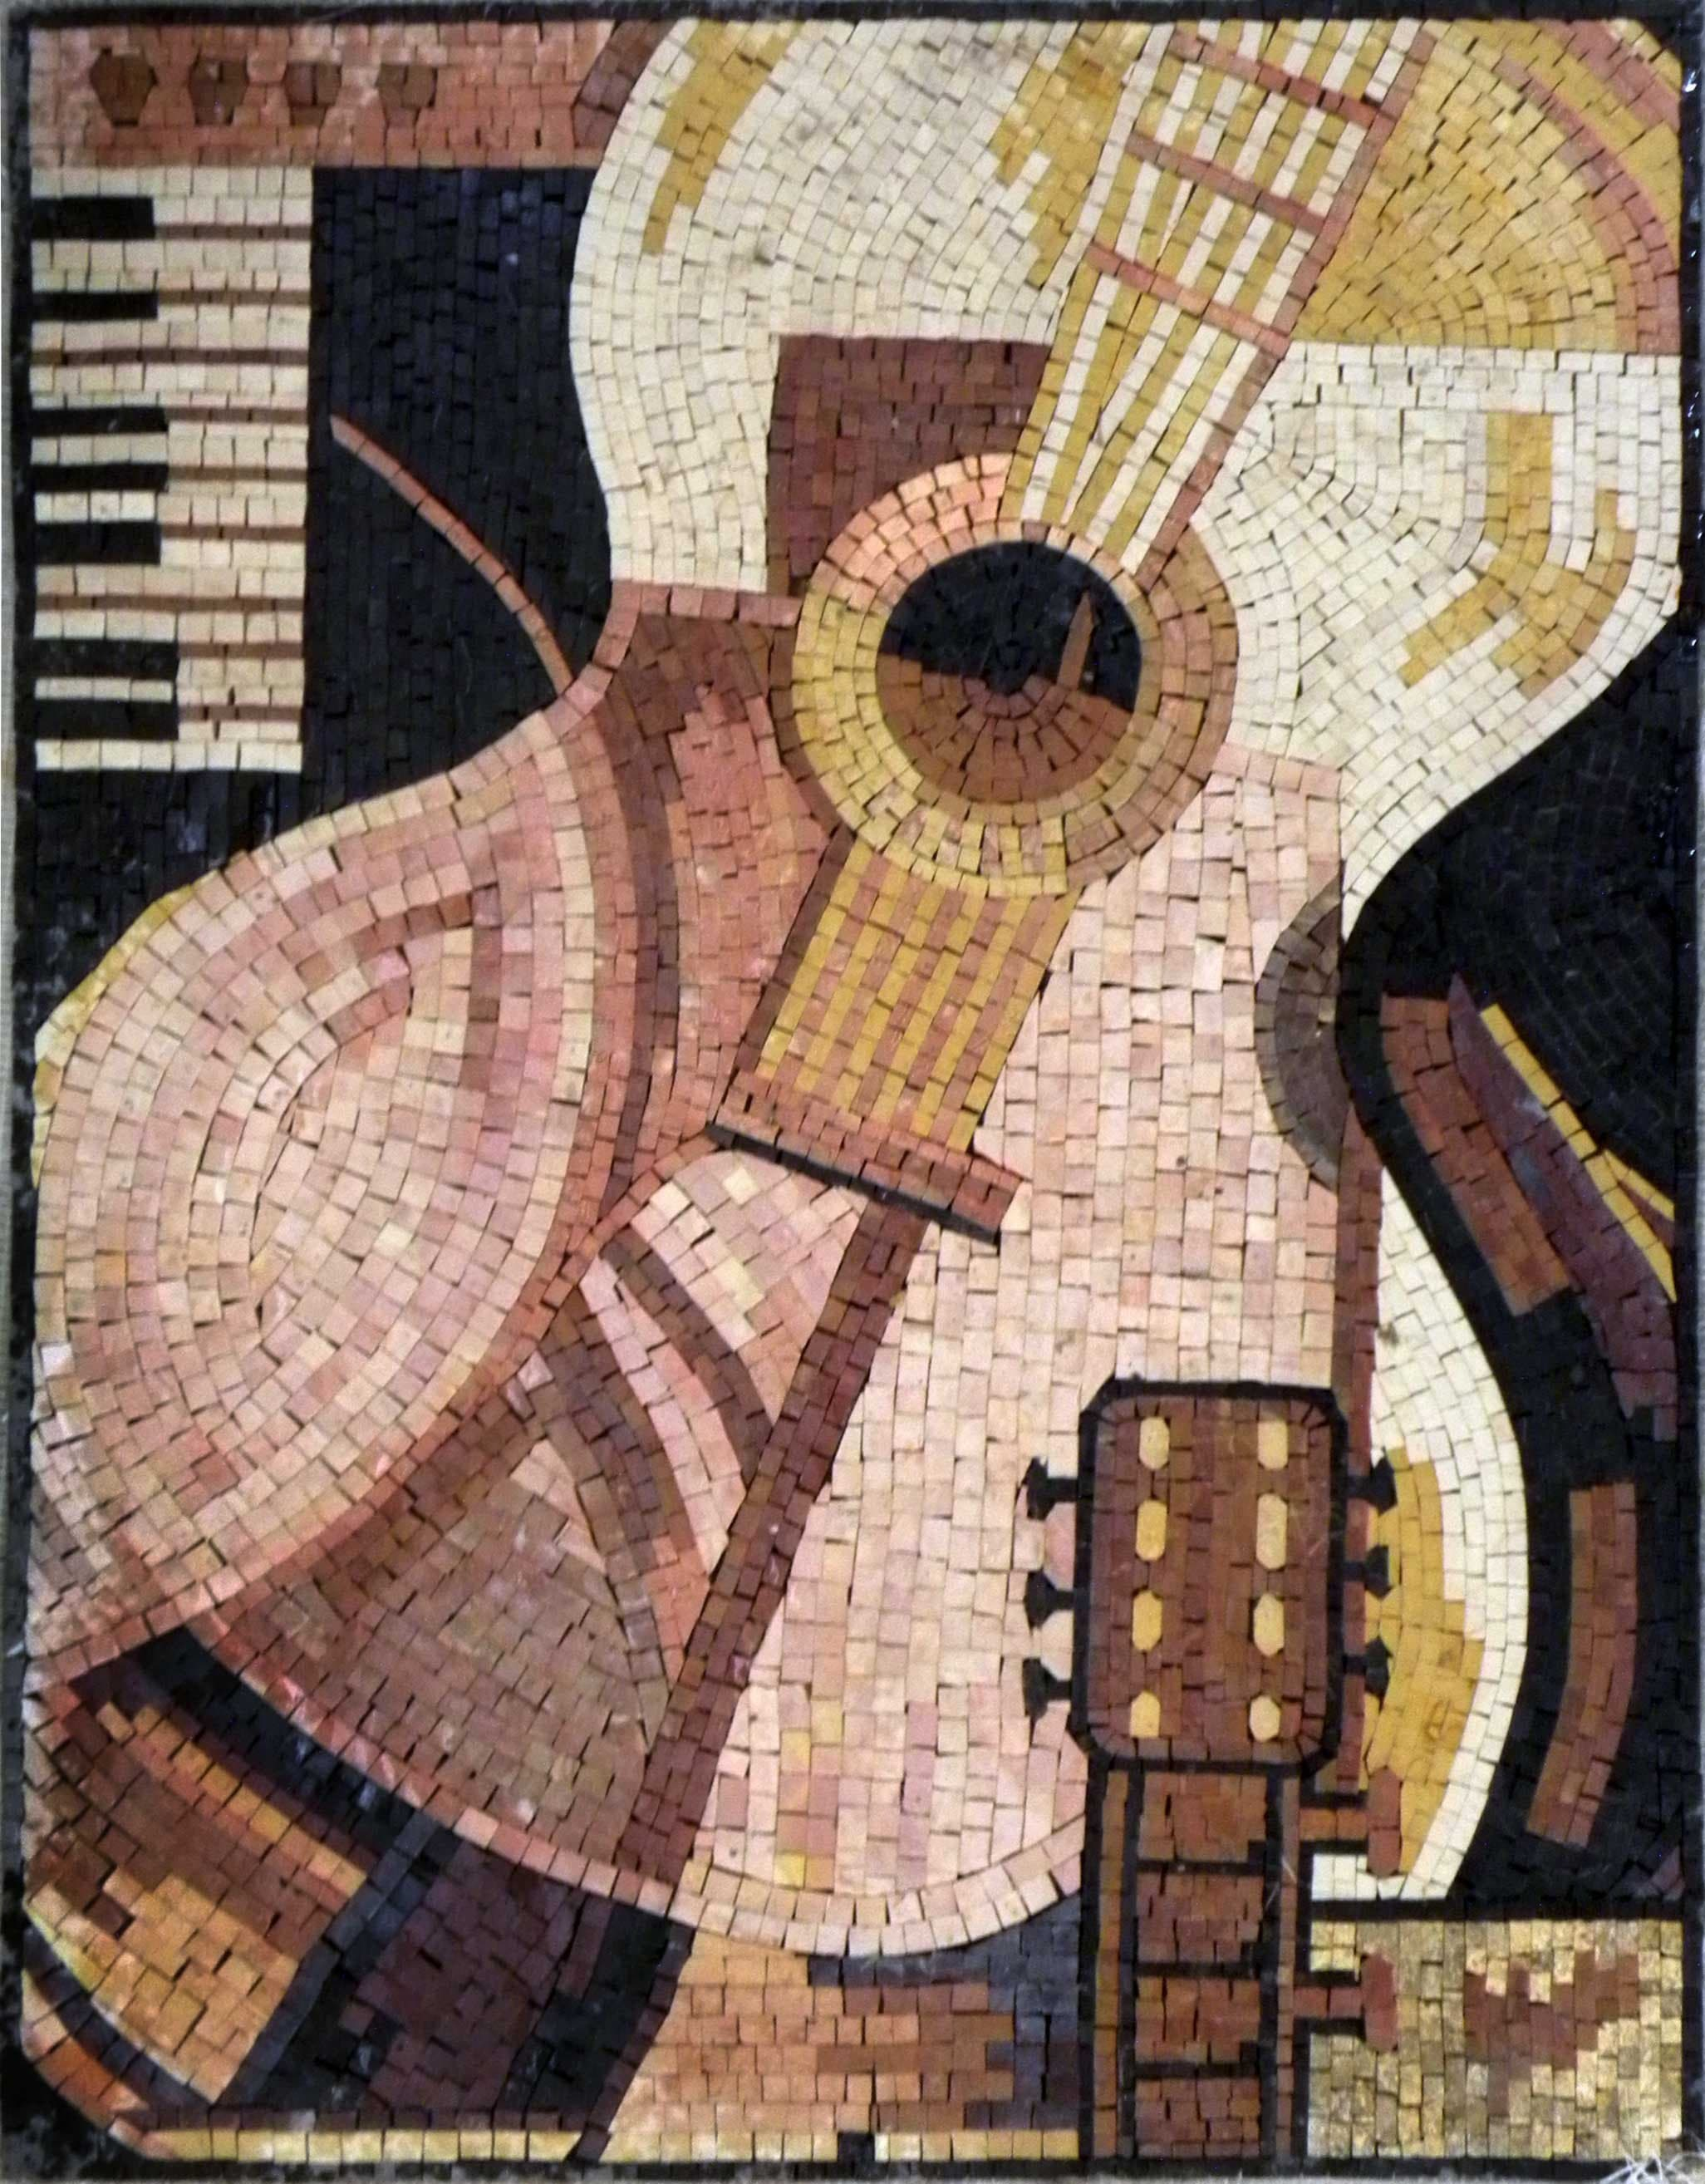 Contemporary Mosaic Art - The Guitar Piece